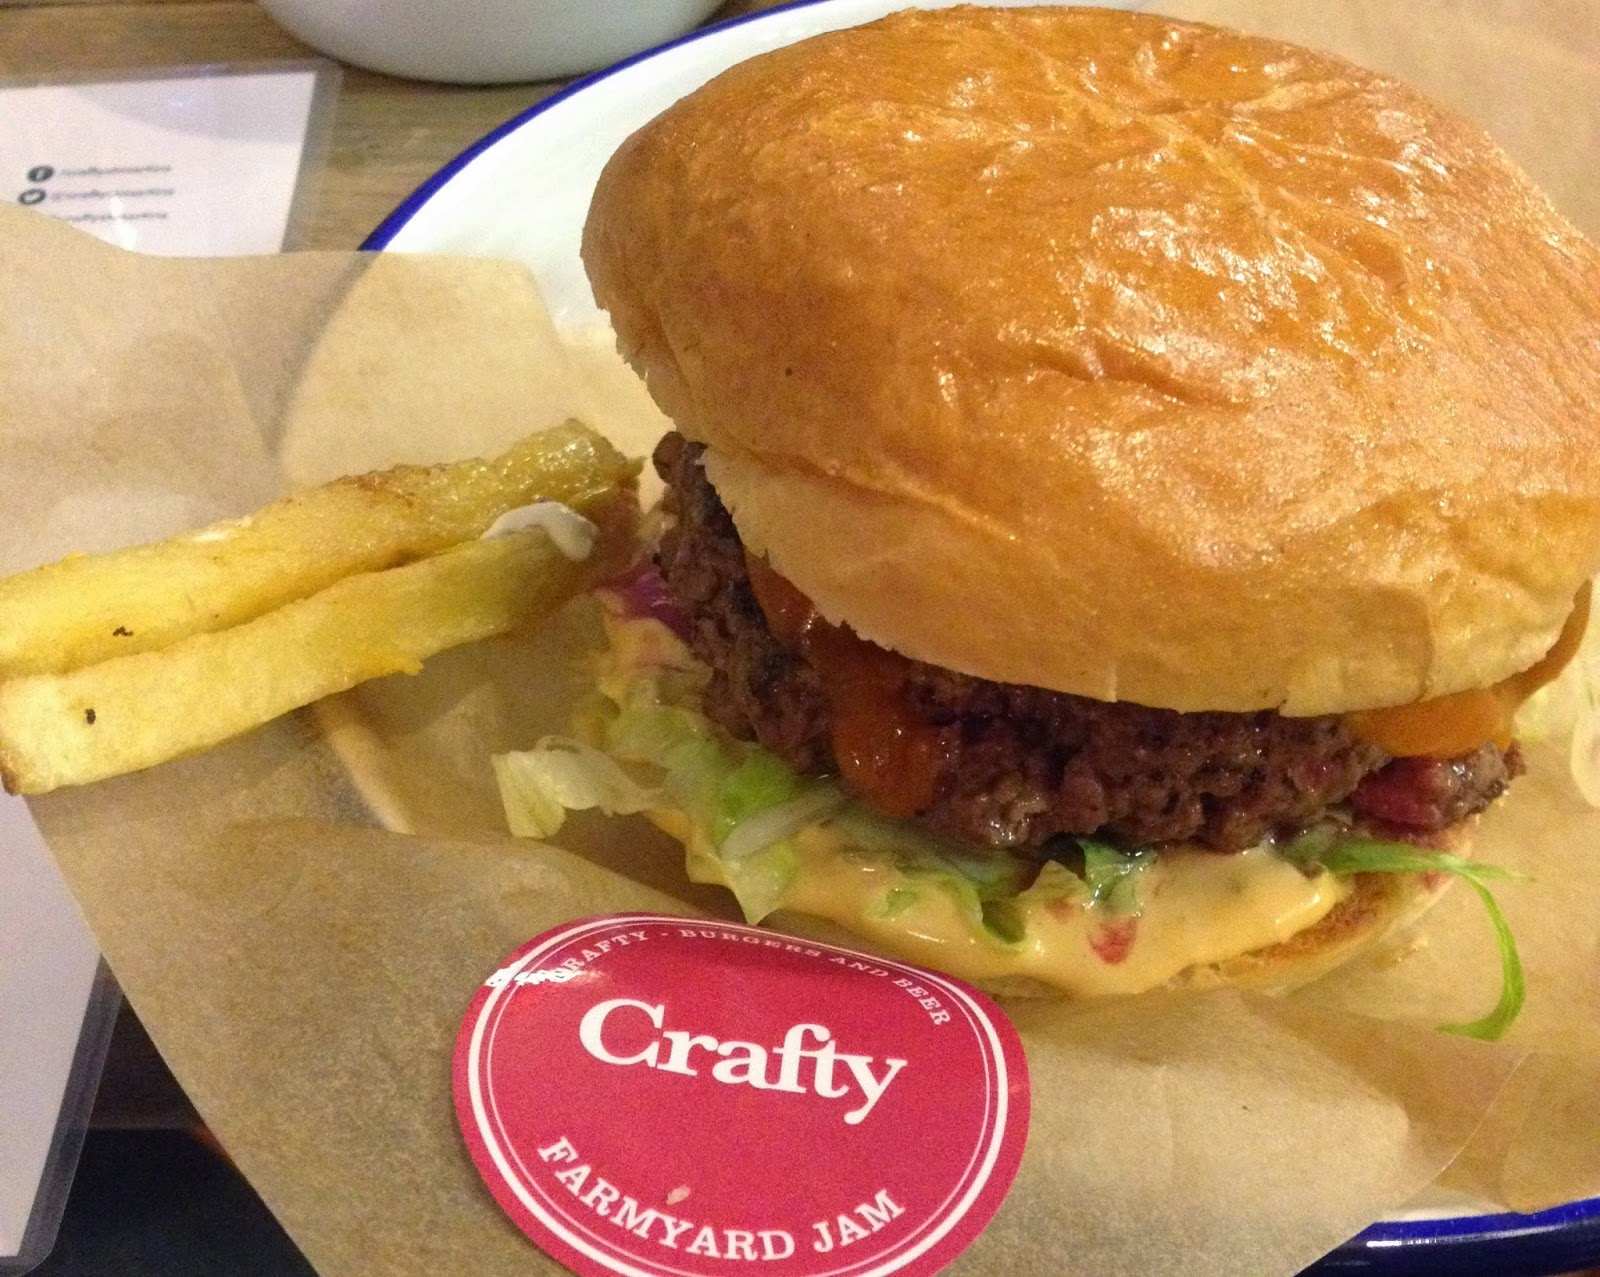 St Martins coffee Crafty Leicester burger